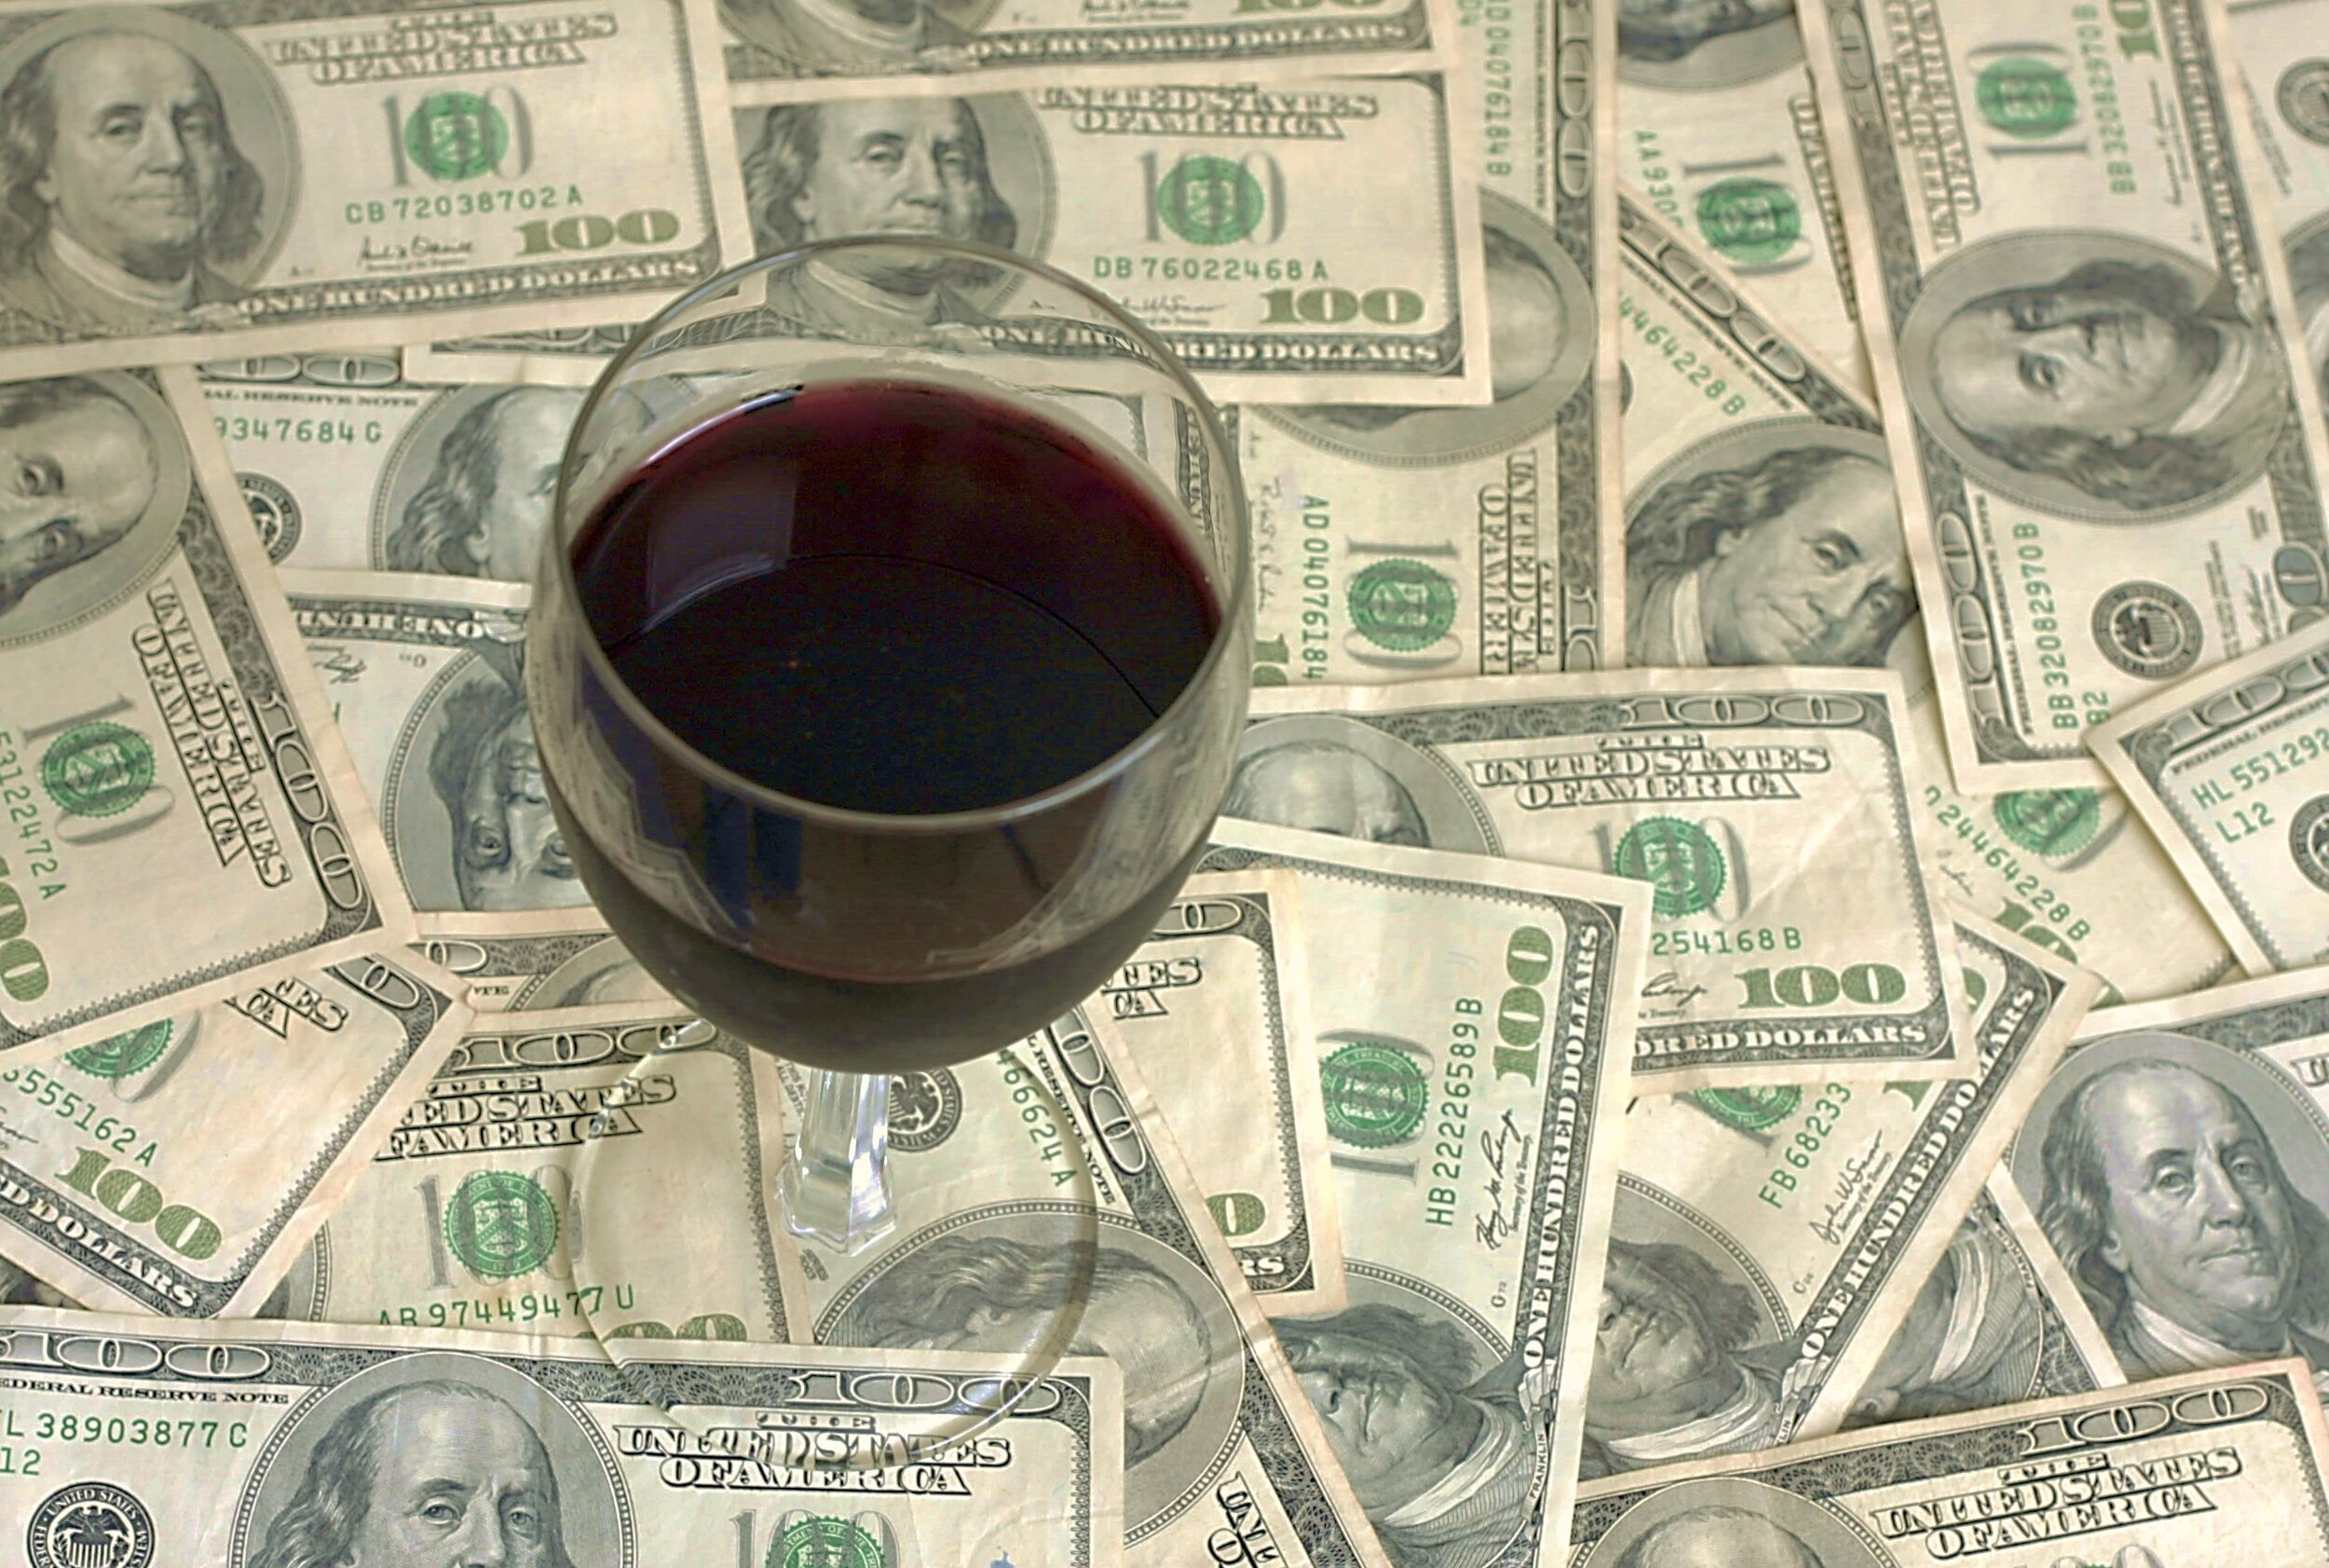 Fine wine investment is not a gamble. Follow the price of money